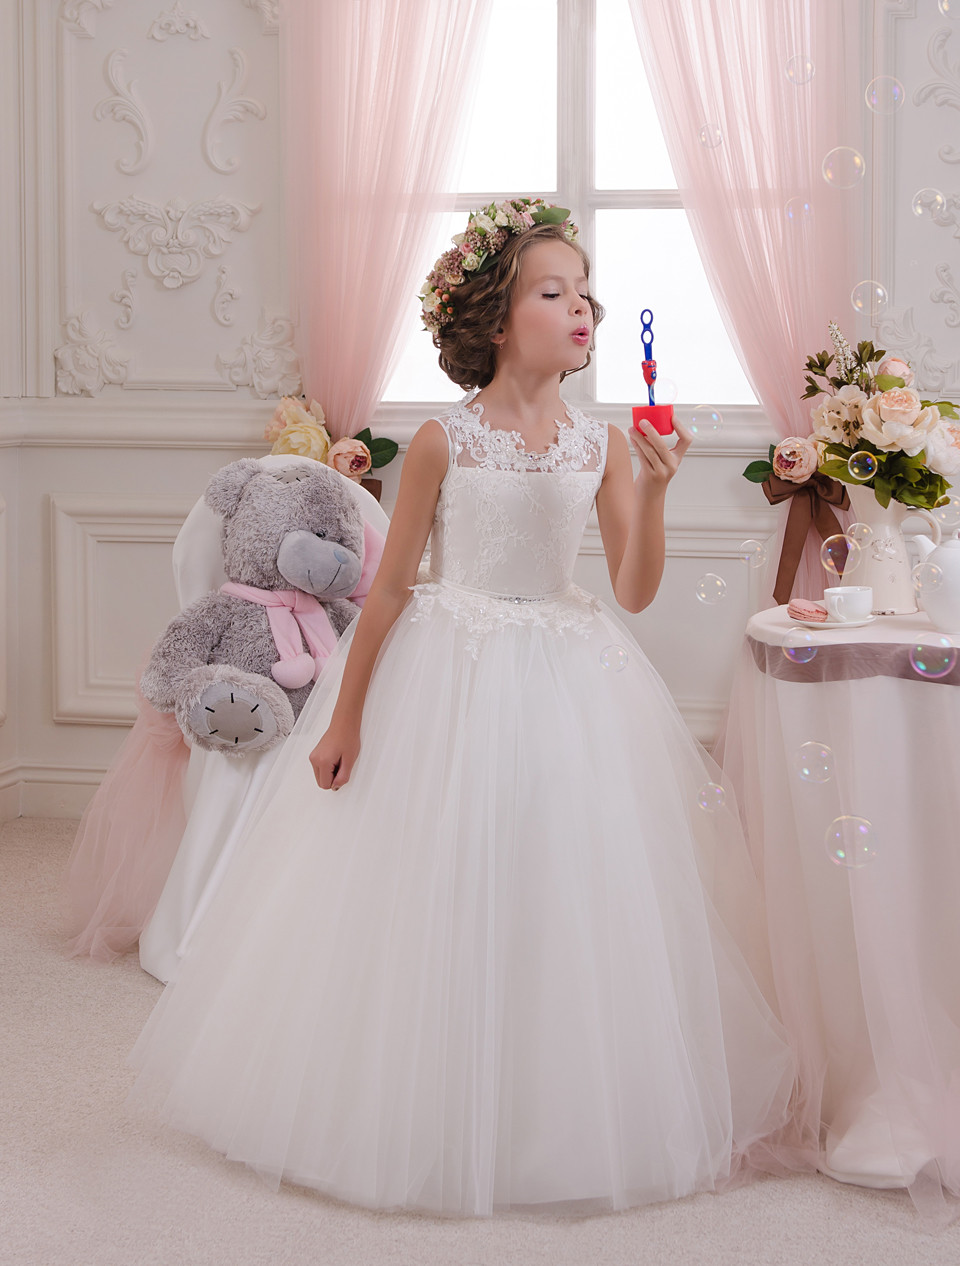 Flower Girl Dresses Hole Ball Gown White/Ivory Lace Sleeveless Crew Neck Long Wedding Pageant First Communion Dresses 2016